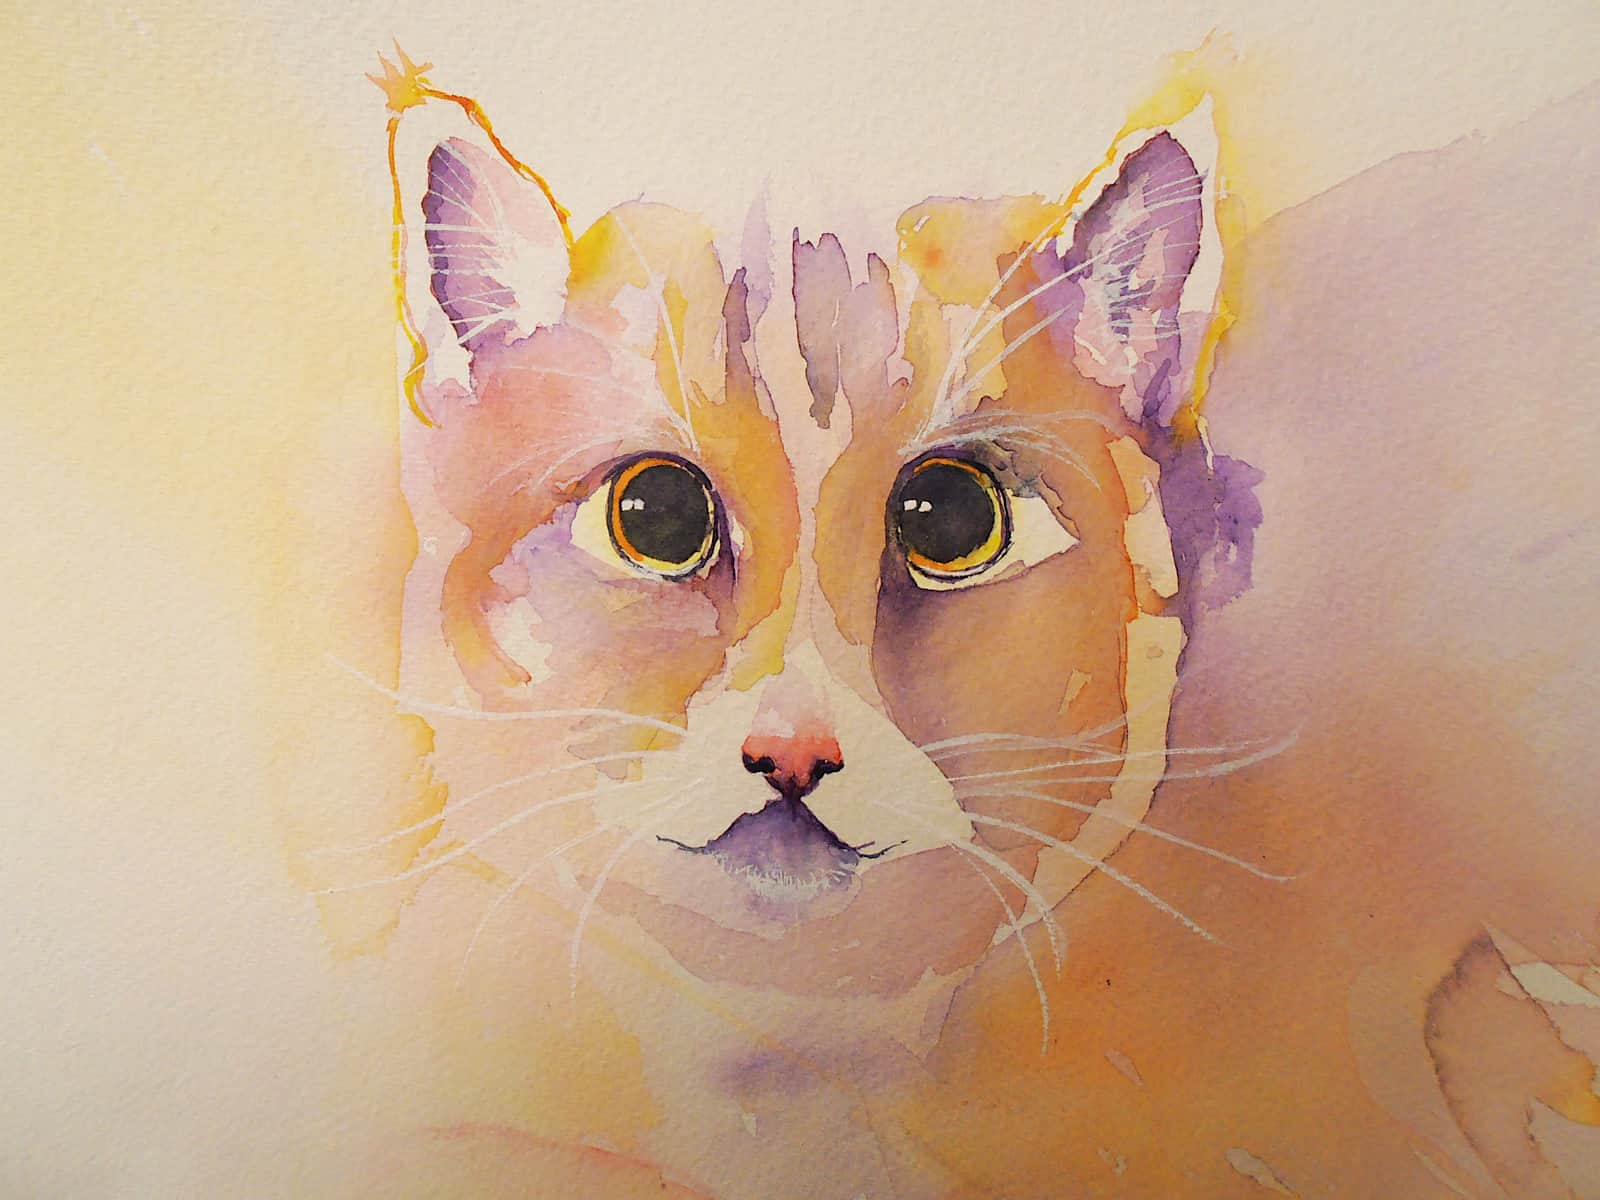 Watercolour ginger cat painting in orange , yellow, purple by Katie Lloyd